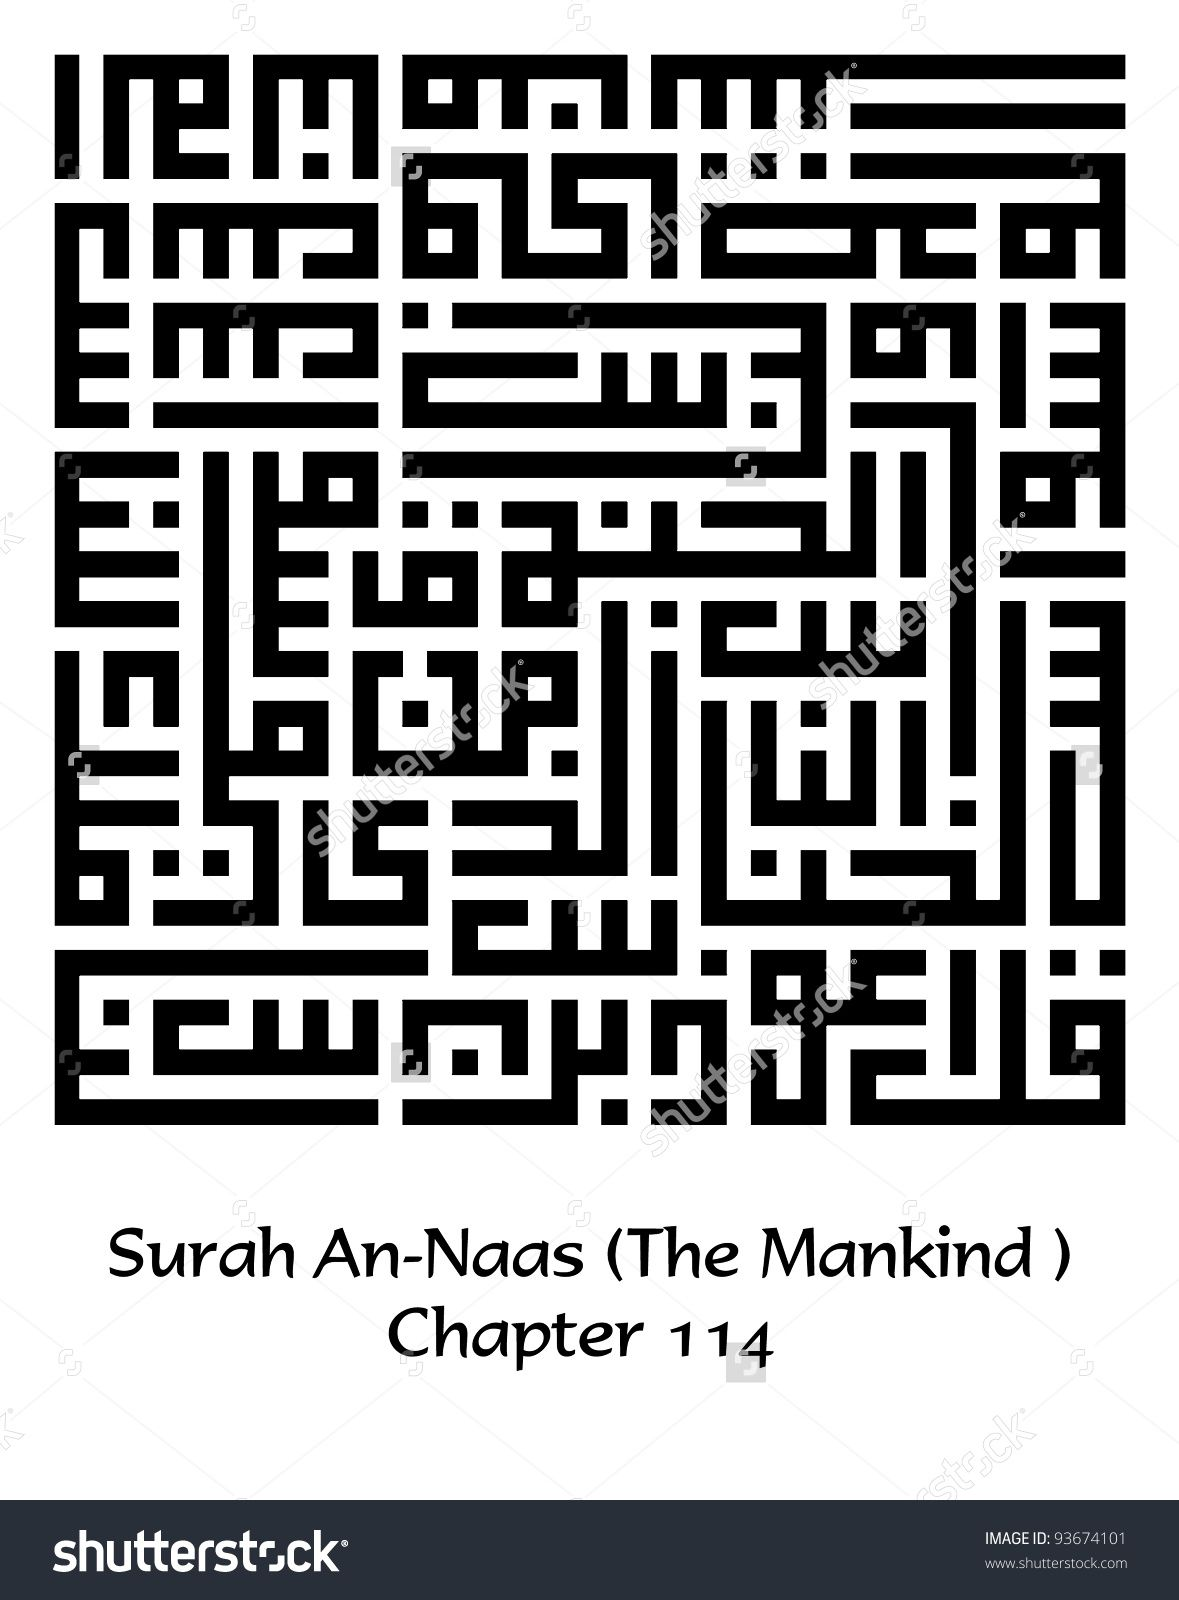 Surah An Naas The Mankind 112th Chapter Of Koran In Kufi Square Arabic Calligraphy